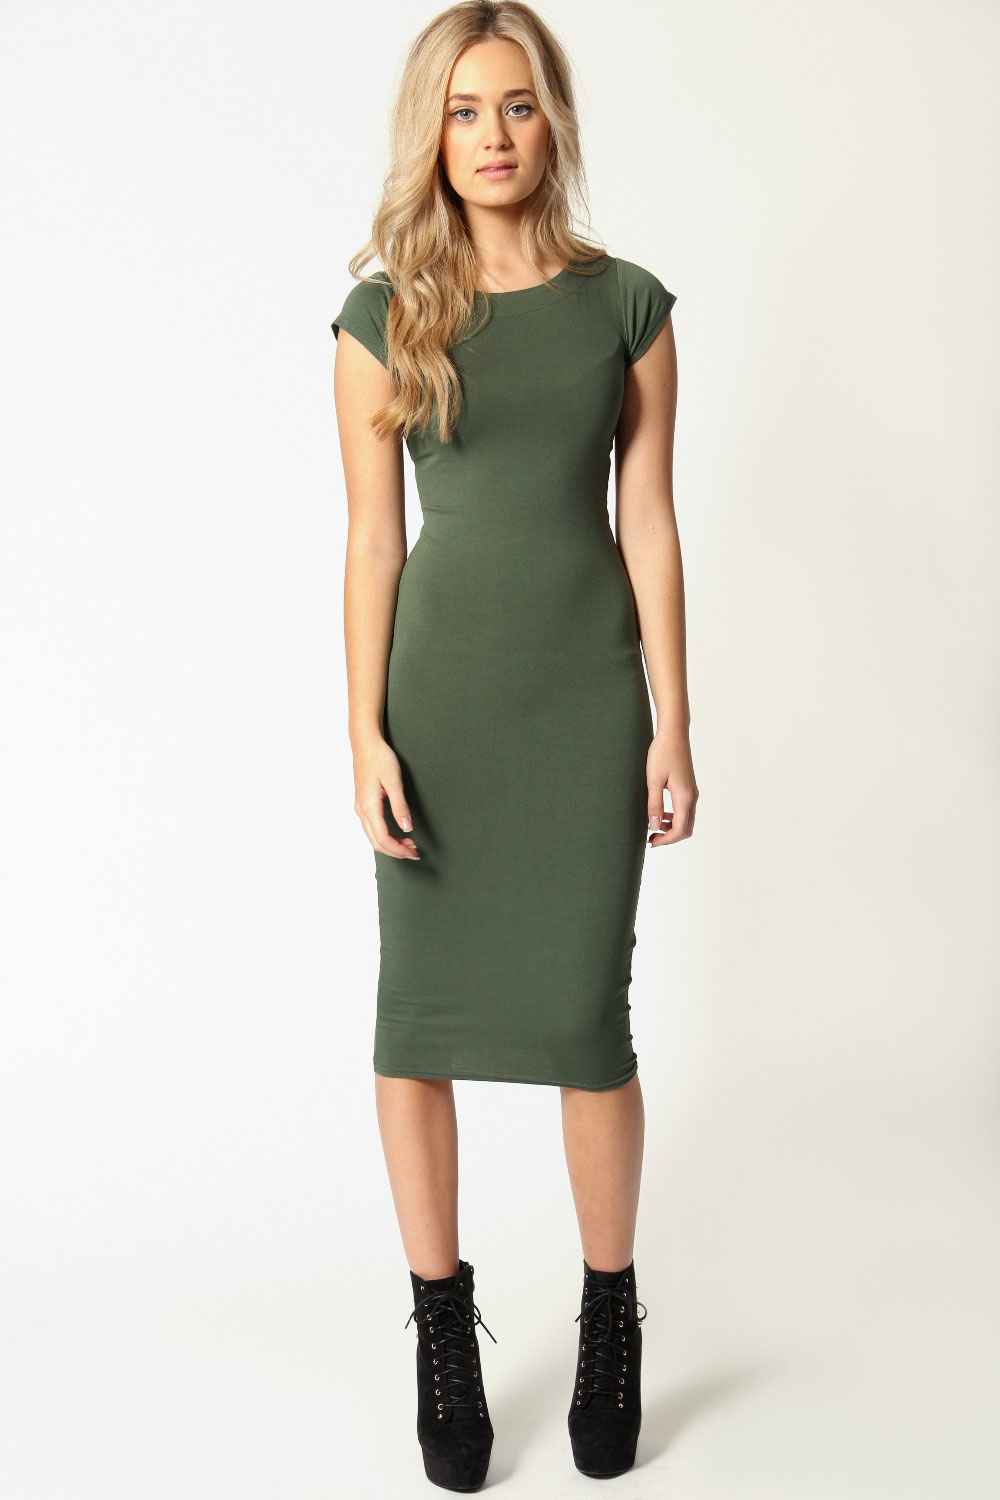 Boohoo-Womens-Ladies-Cara-Cap-Sleeve-Jersey-Bodycon-Midi-Dress